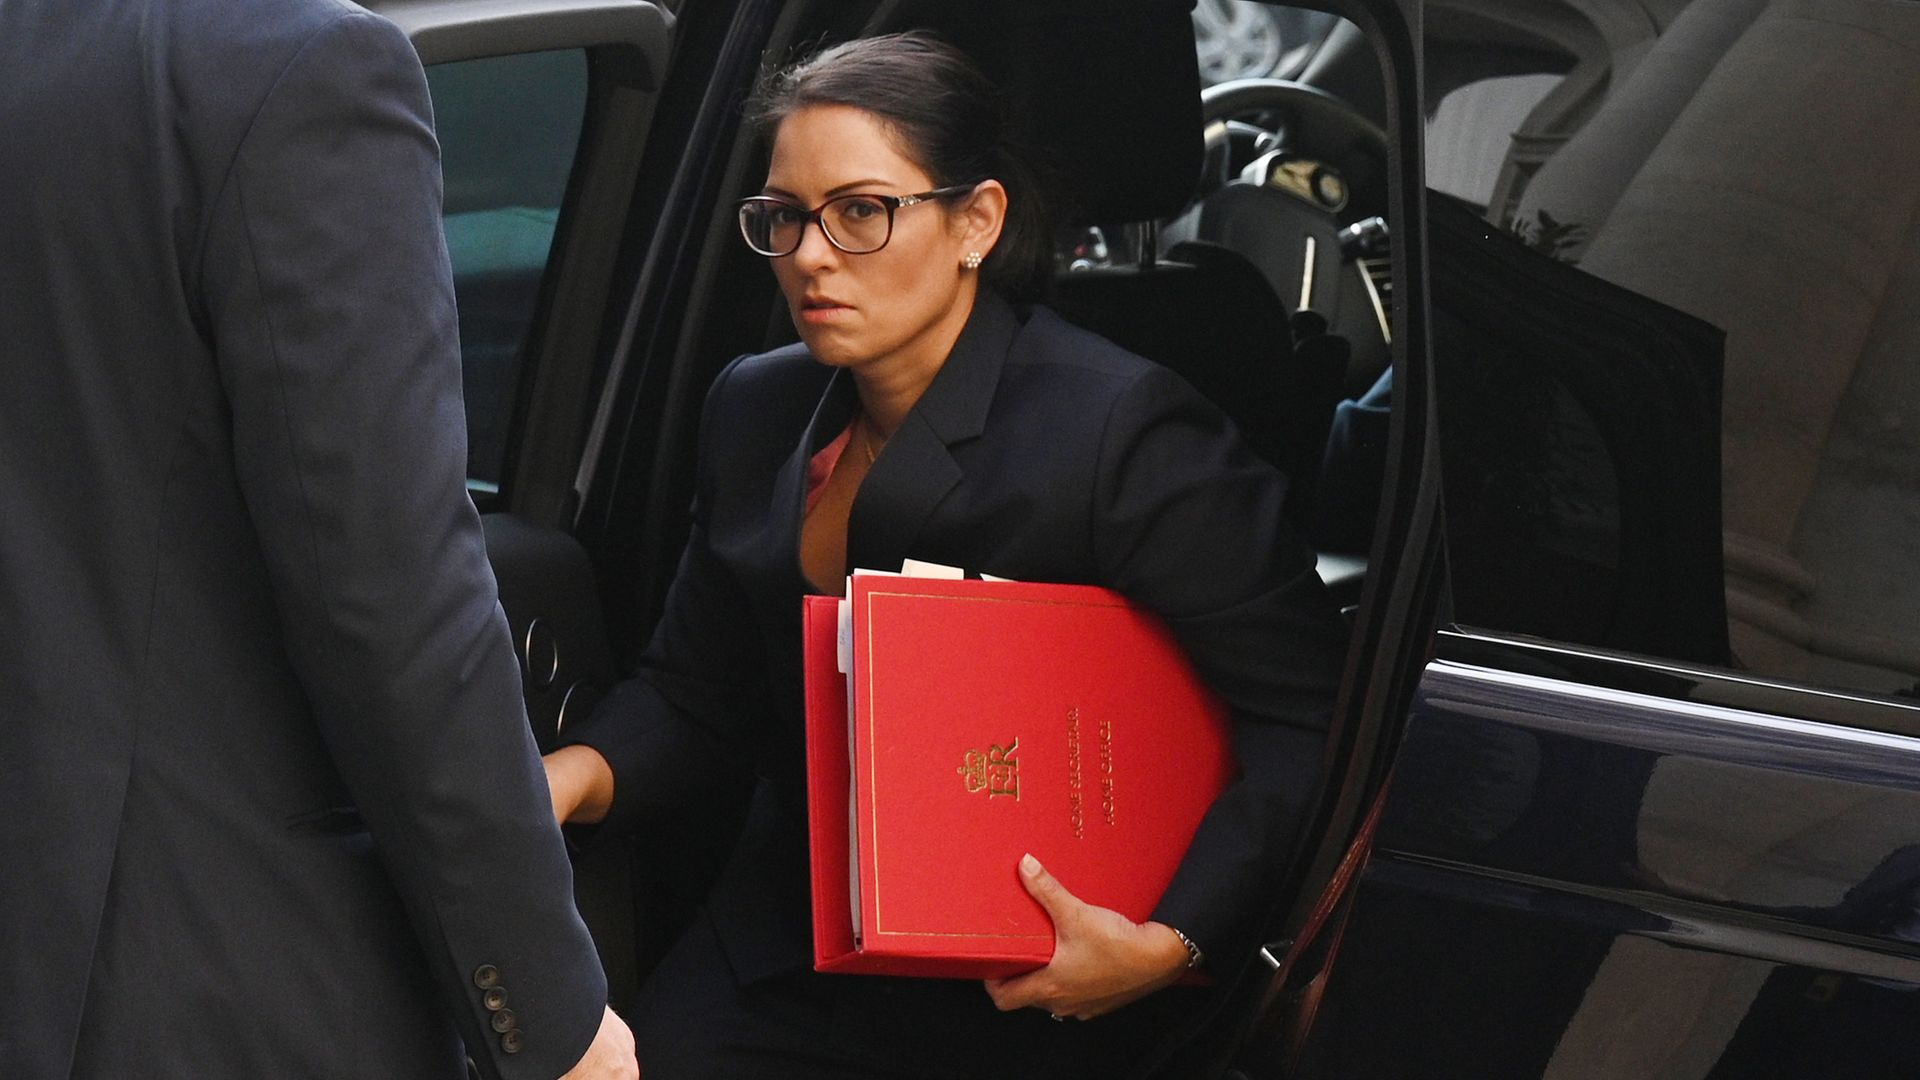 Home secretary Priti Patel arrives at the Foreign and Commonwealth Office (FCO) in London, for a Cabinet meeting held at the FCO. - Credit: PA